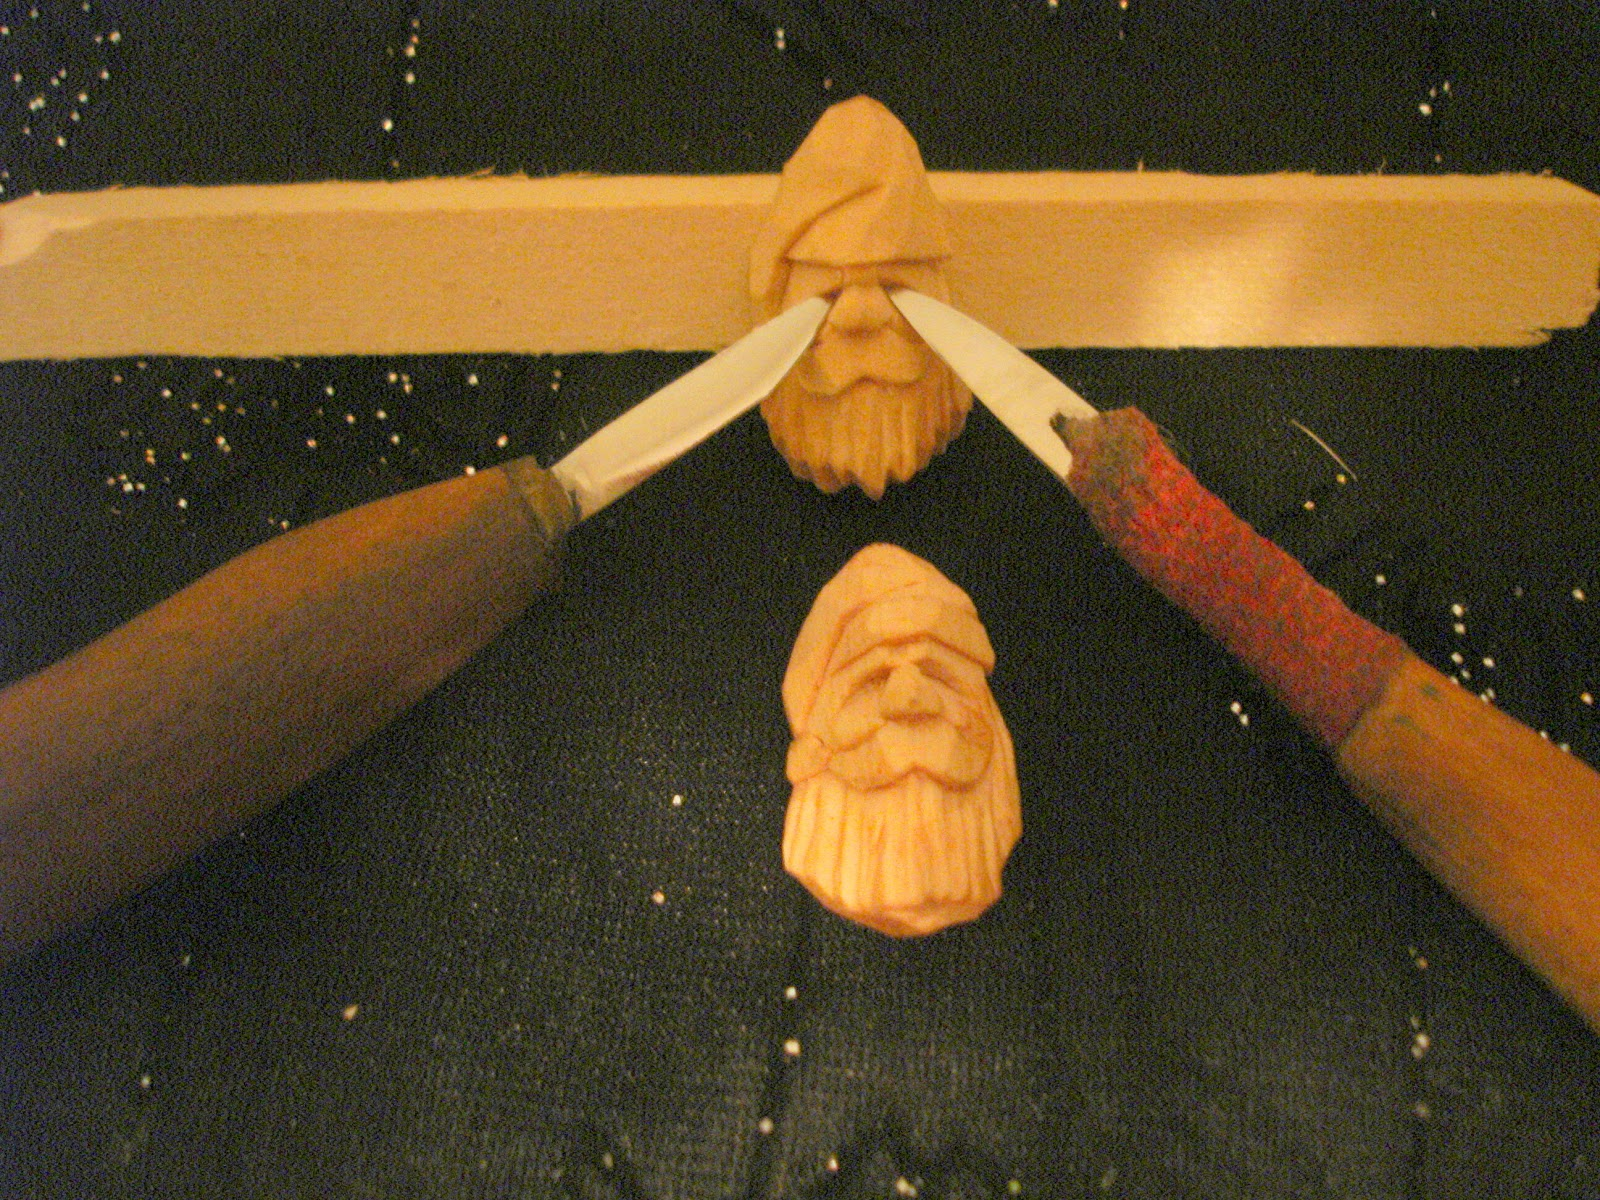 Beginners Carving Corner and Beyond: TIP - For Whittling/Carving the ...